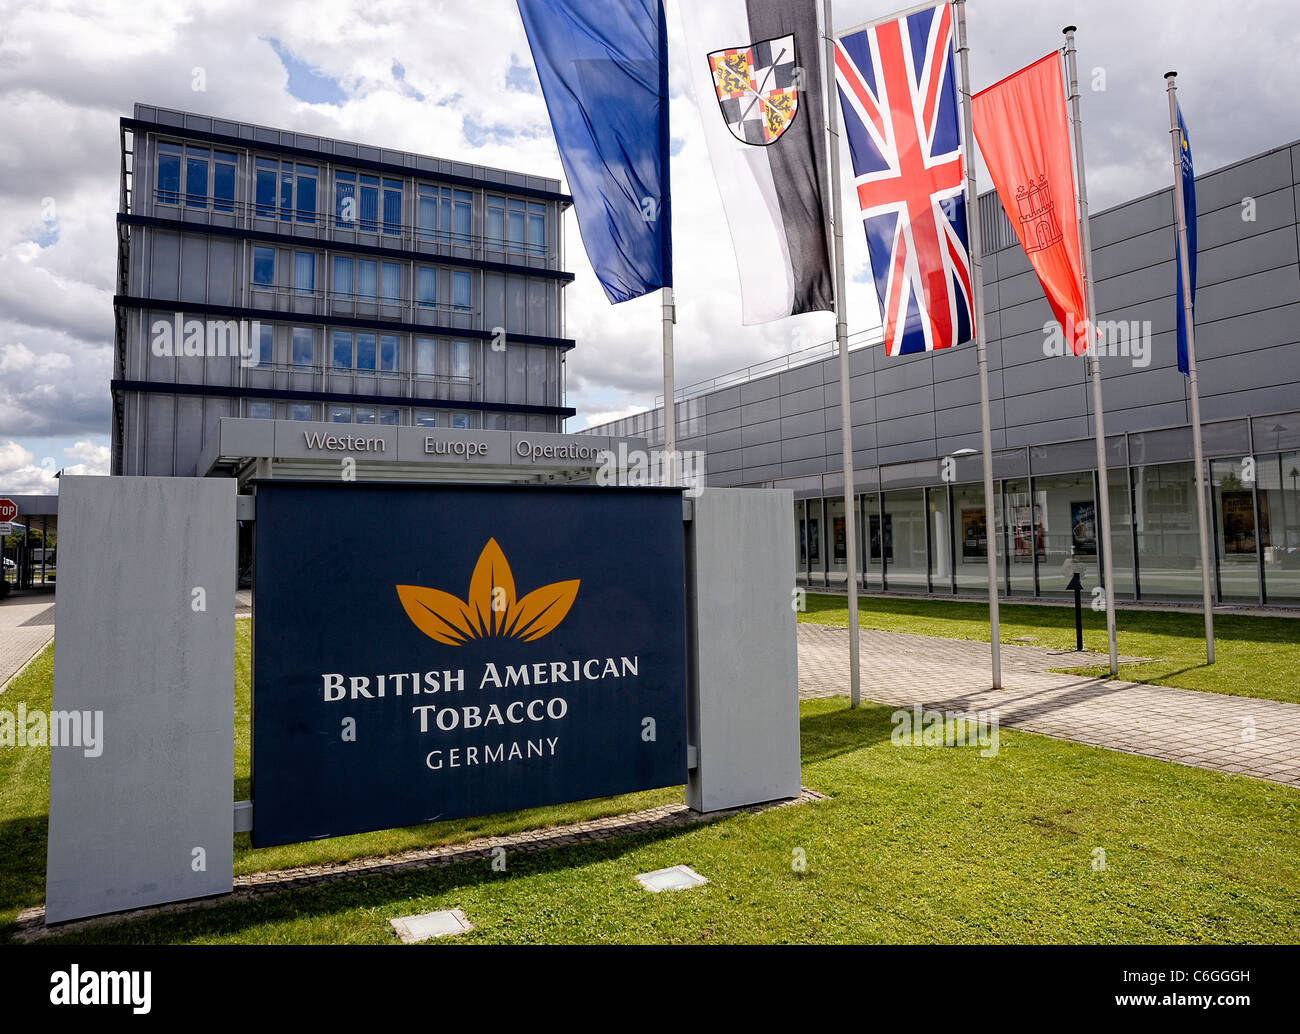 british american tobacco malaysia Cigarettes in malaysia, 2018,  british american tobacco (bat) malaysia is the clear leader albeit with a reduced 571% share in 2016.